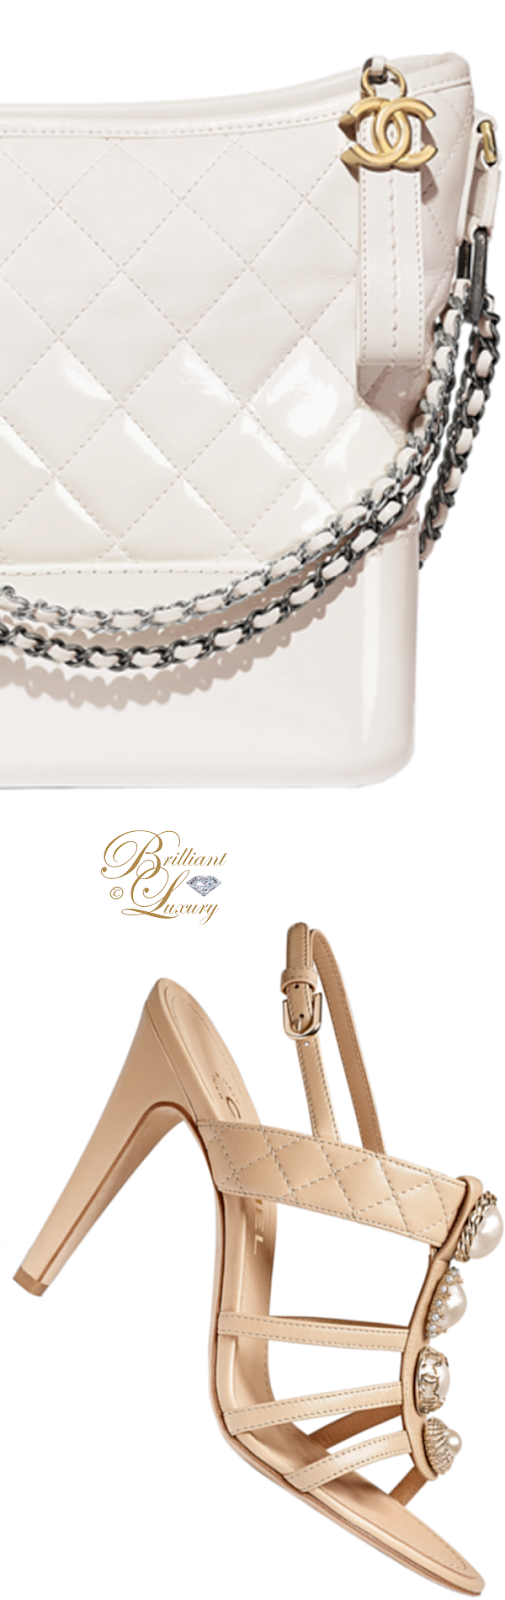 Brilliant Luxury ♦ Chanel white Gabrielle hobo bag and Chanel sandals in gold